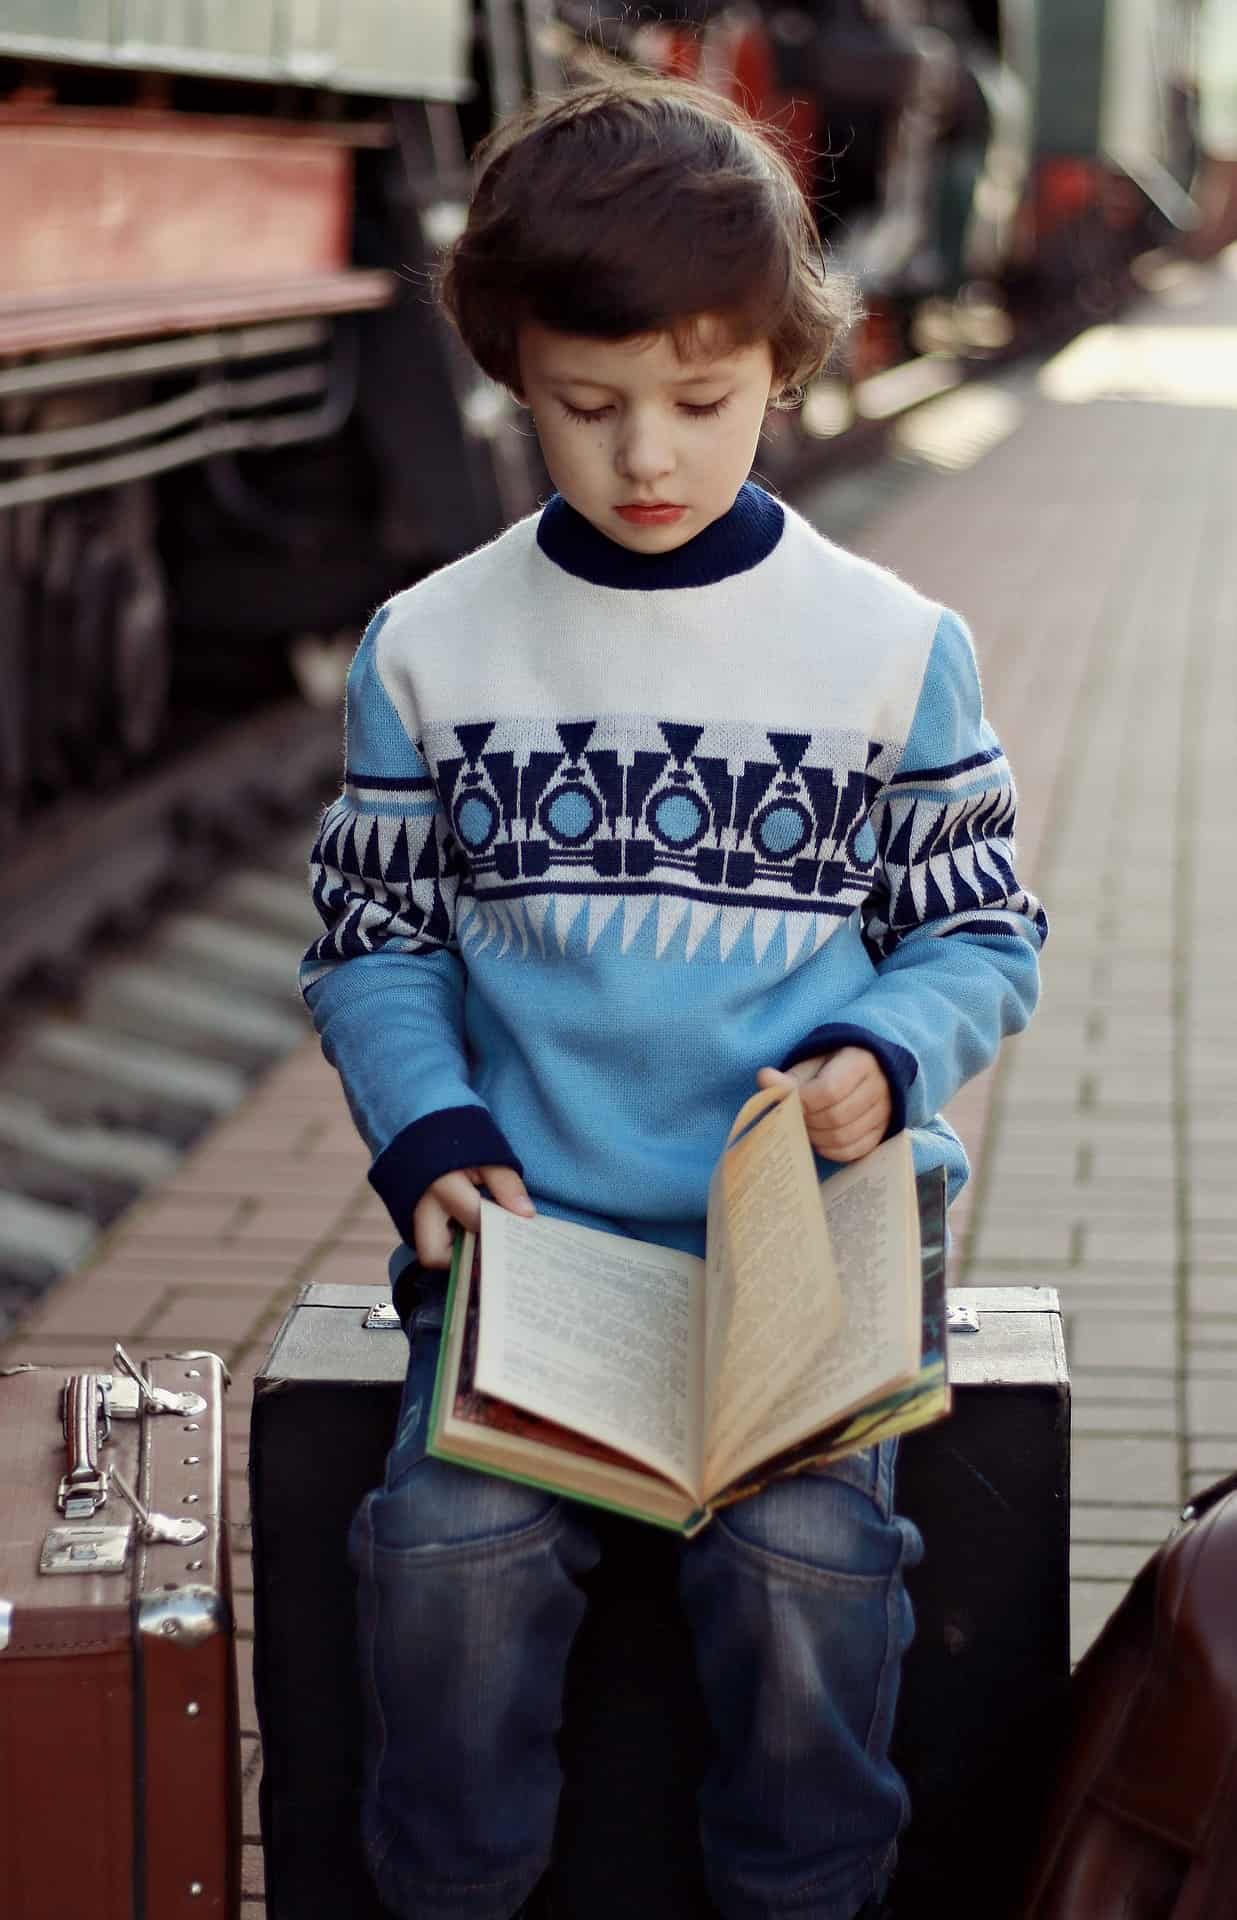 How to Encourage Reading for Children - Reading while waiting for a train. How to develop reading habit in kids Child reading